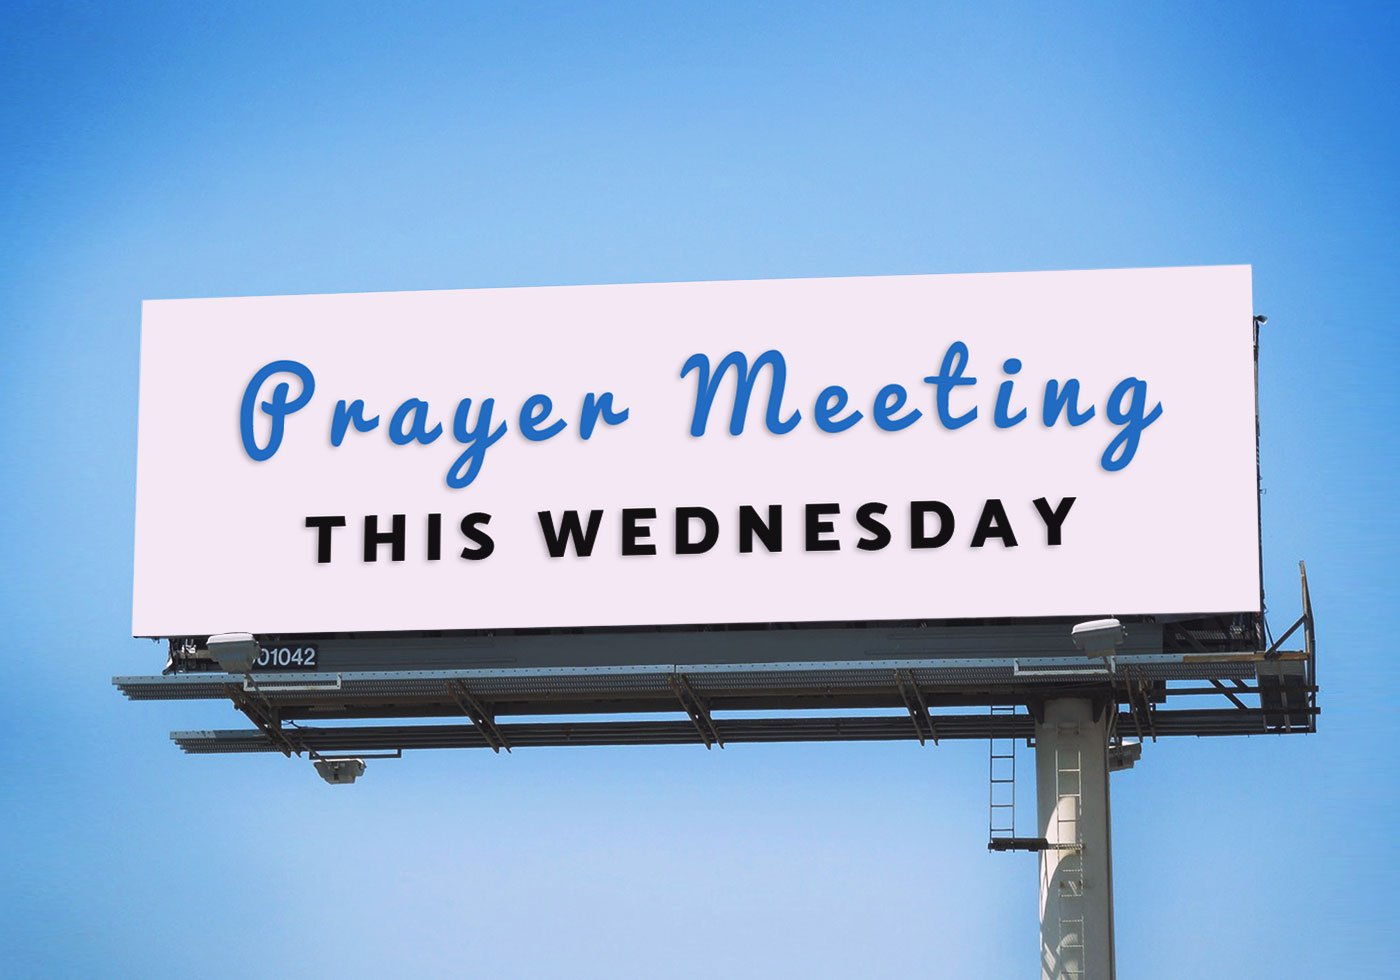 Prayer Meeting: A Church Changes for the Better